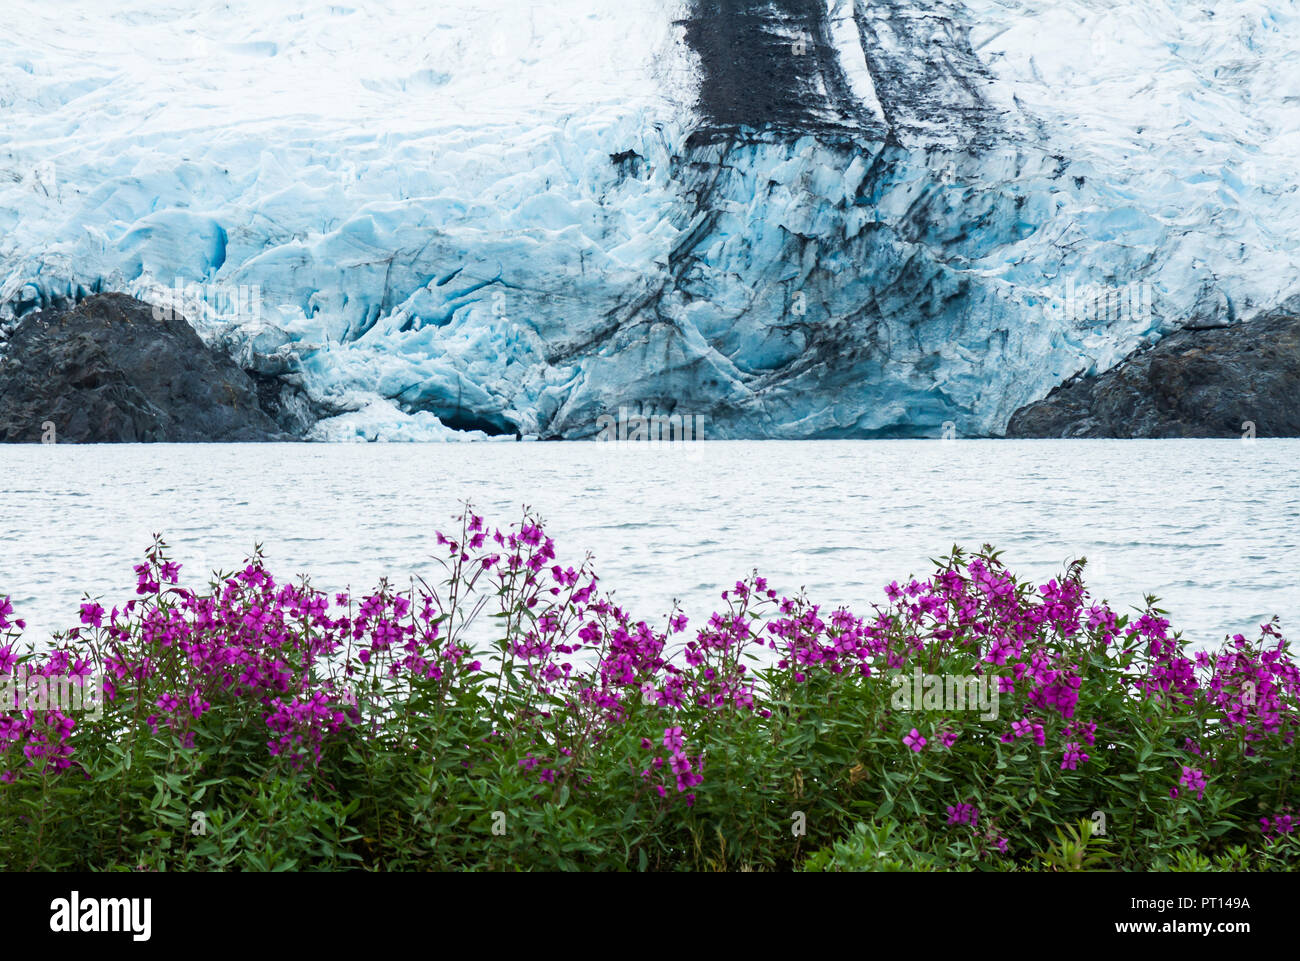 Pink sweet pea wildflowers bloom on the shore of Portage Lake below the steep calving face ofthe Portage Glacier in South Central Alaska - Stock Image